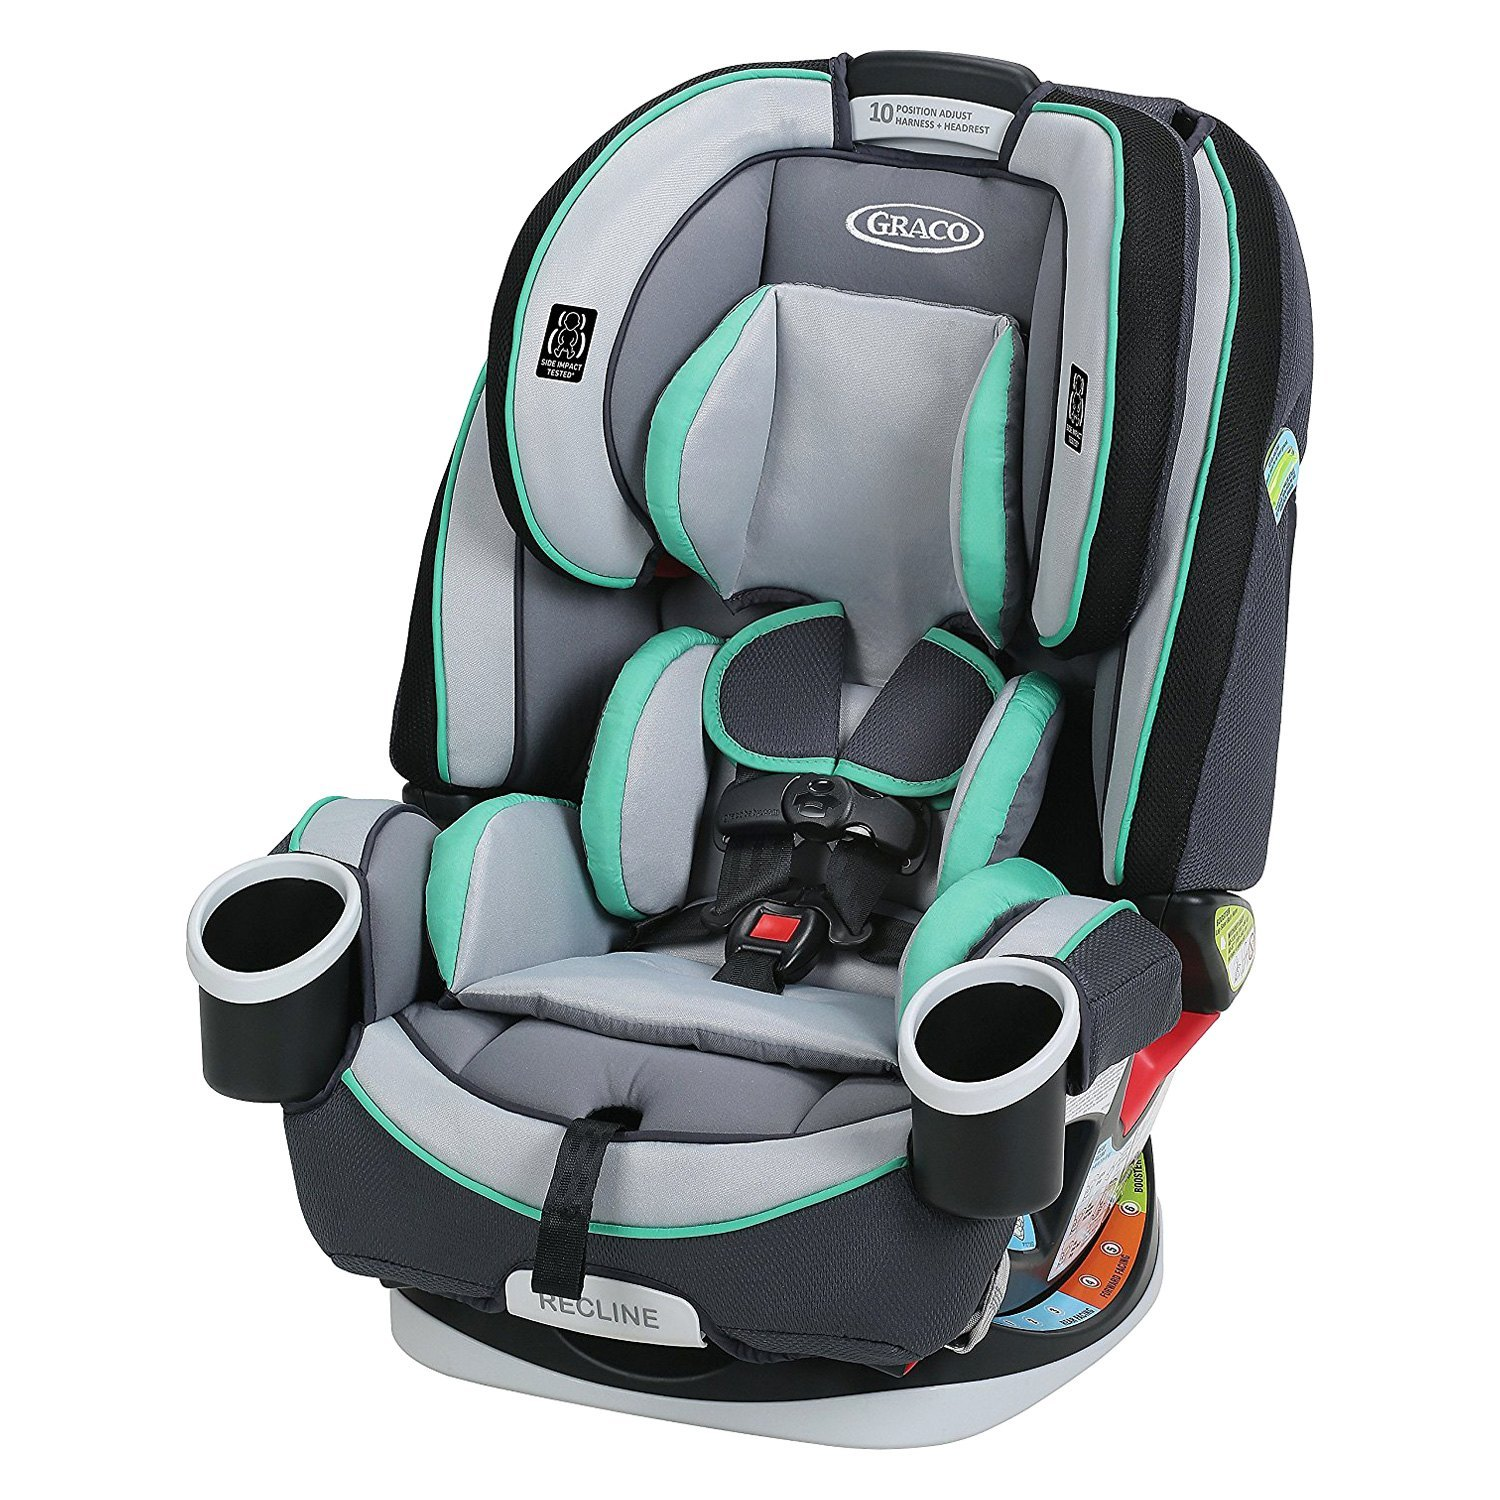 graco baby 4ever all in 1 car seat. Black Bedroom Furniture Sets. Home Design Ideas